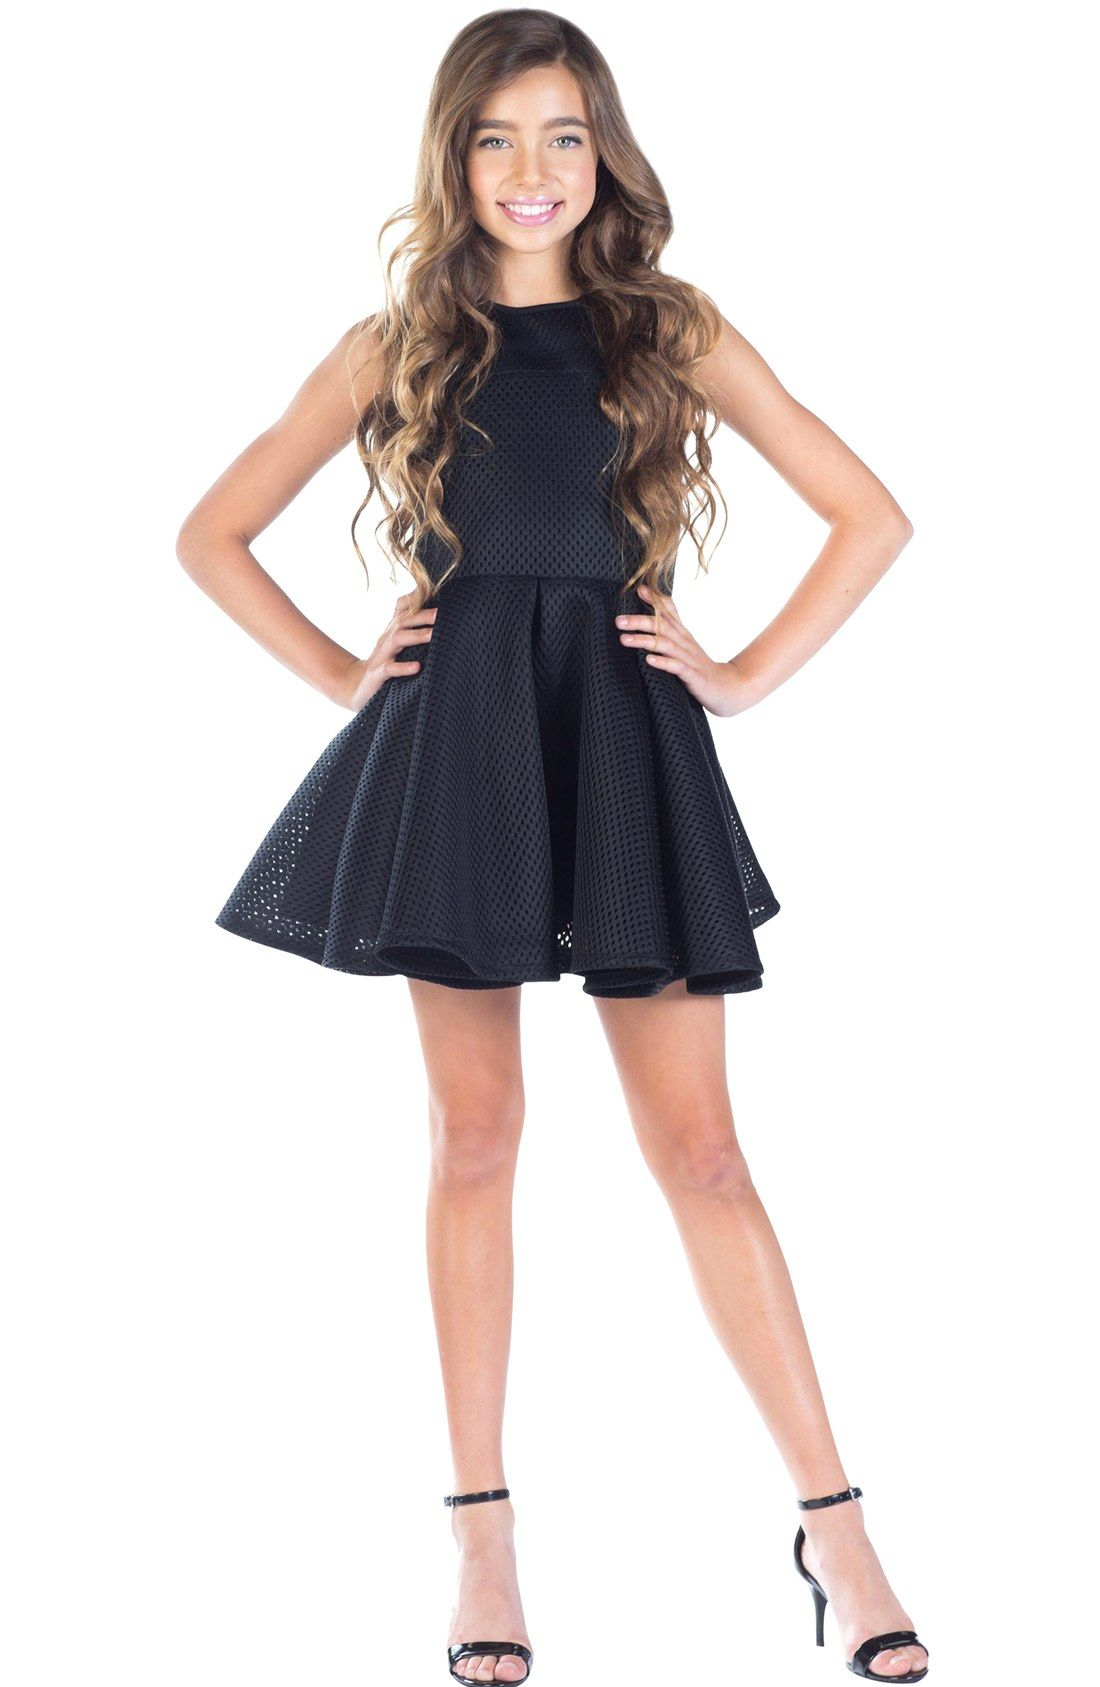 Mid Thigh Dresses for Teens